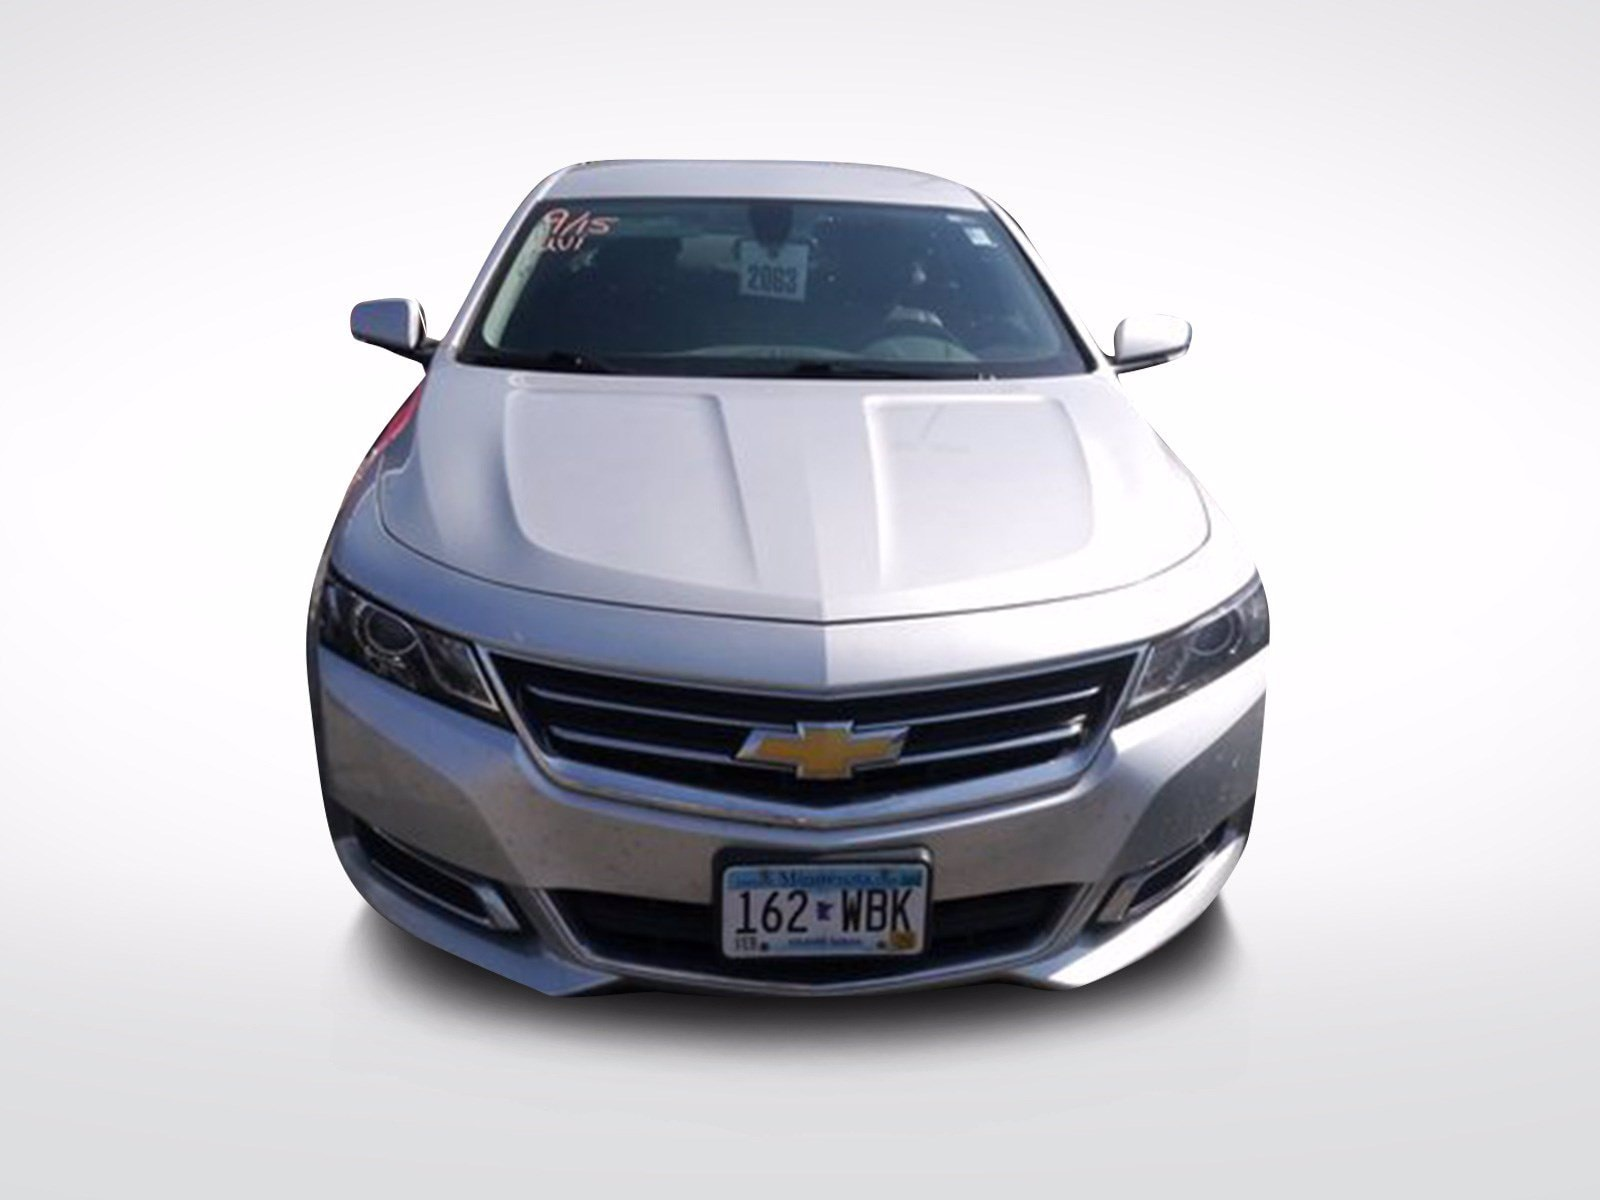 Used 2016 Chevrolet Impala 1LT with VIN 2G1105SA1G9190679 for sale in Baxter, Minnesota